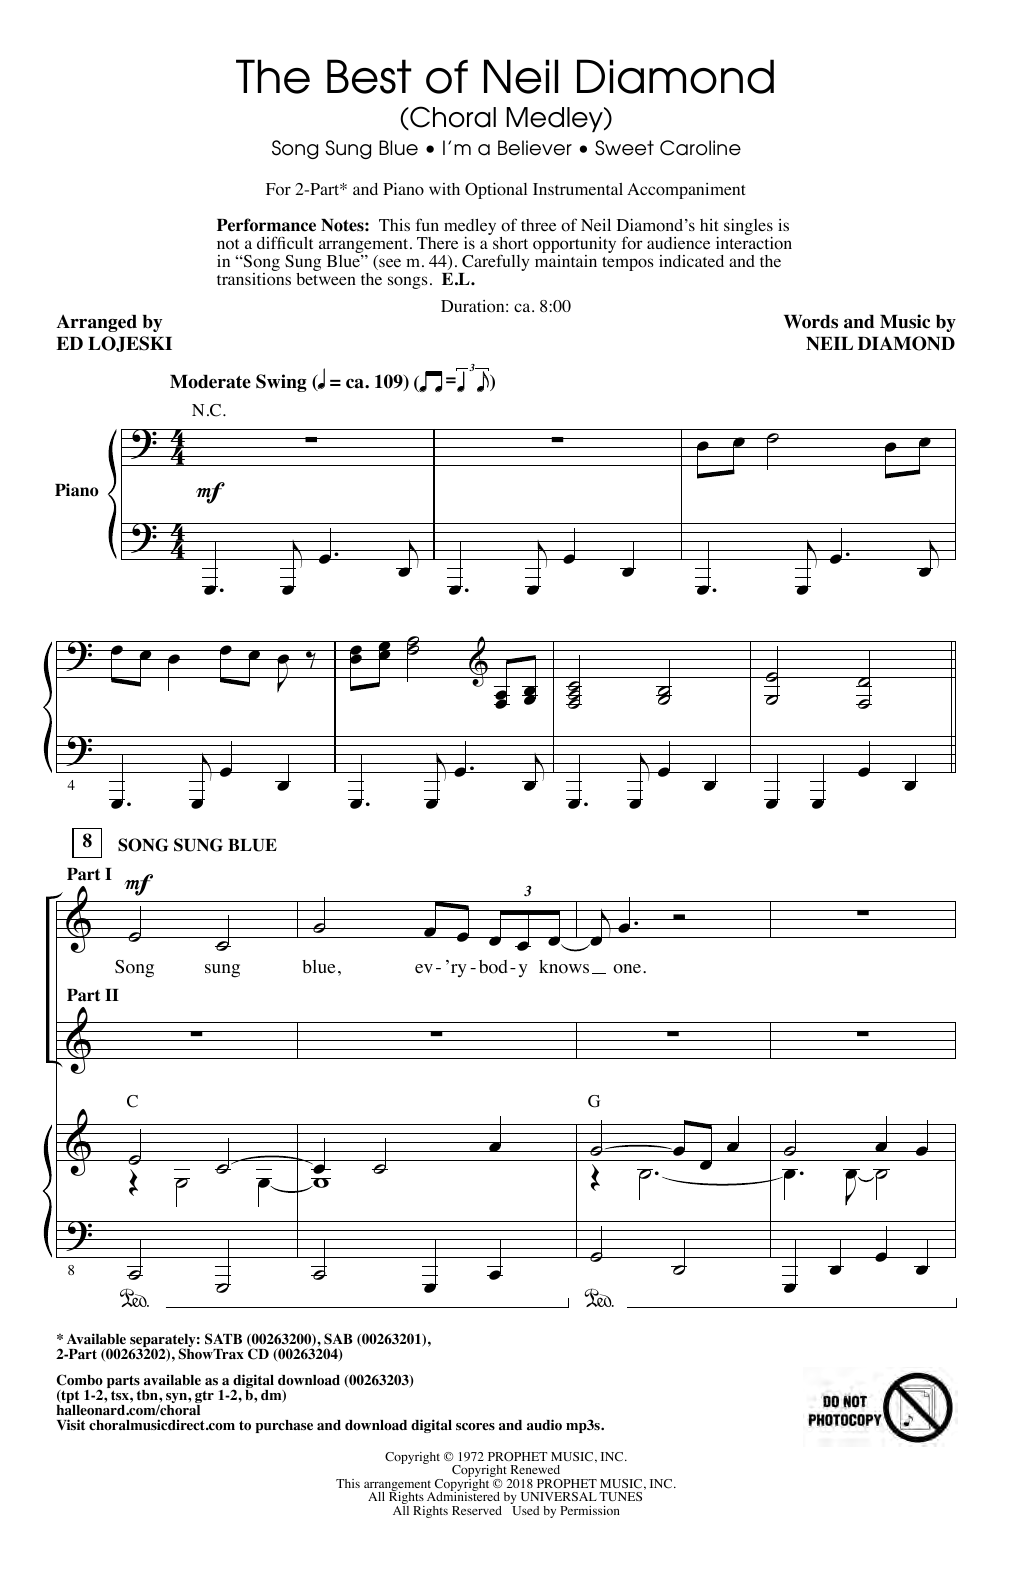 The Best of Neil Diamond (arr. Ed Lojeski) Sheet Music